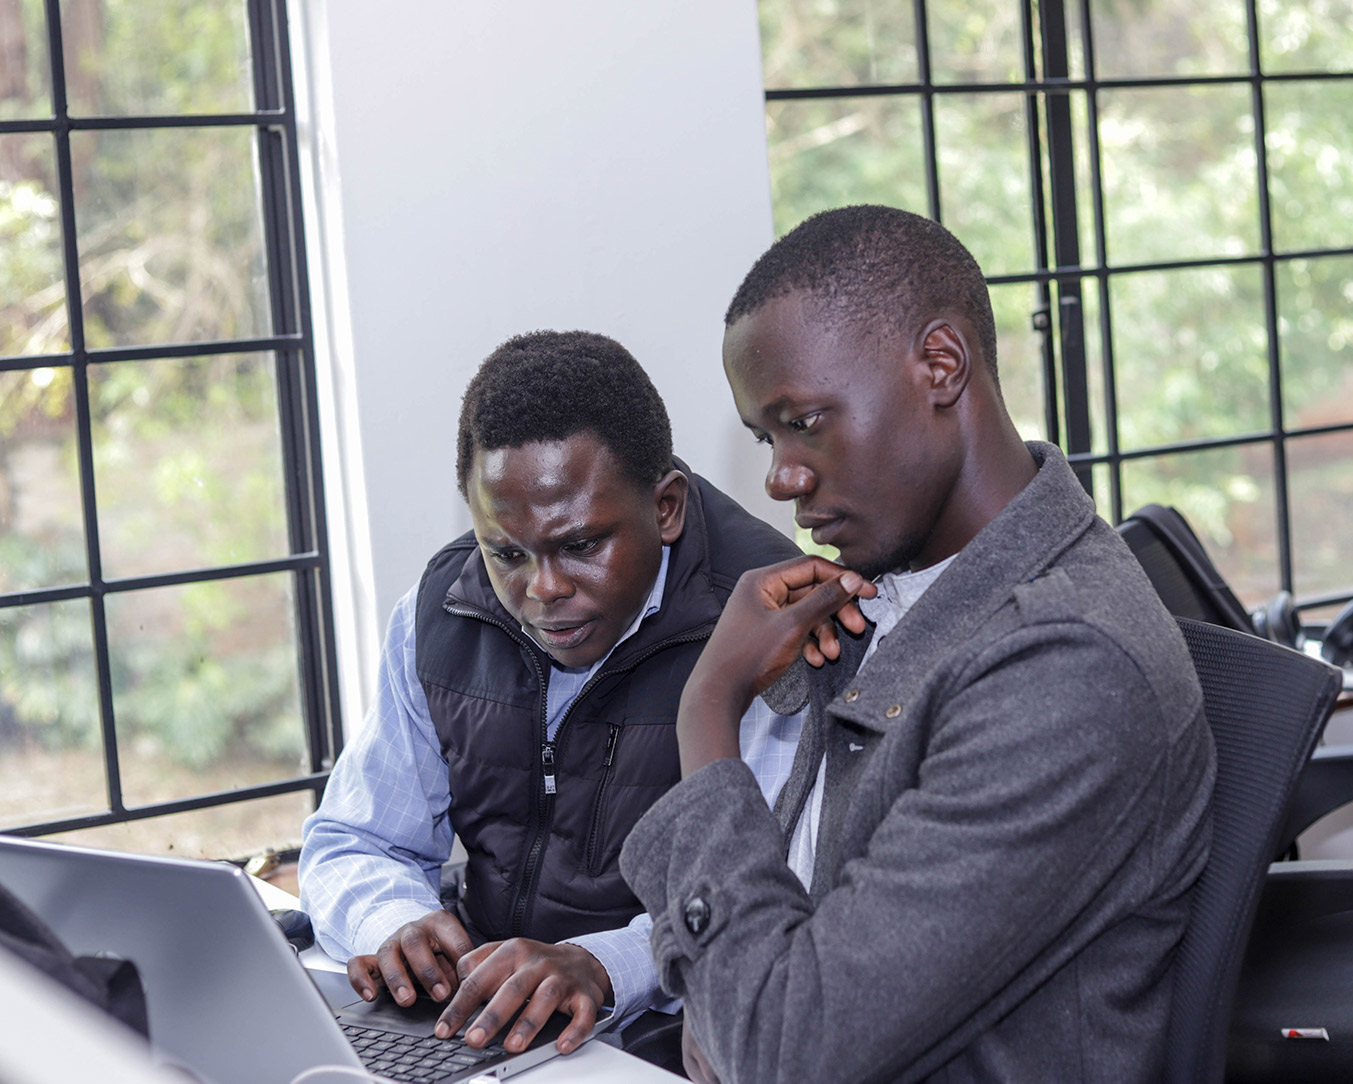 Maurice Omondi, software engineer at Tracom Services Limited traveled to Ethiopia to build merchant acquiring applications for Tracom clients.